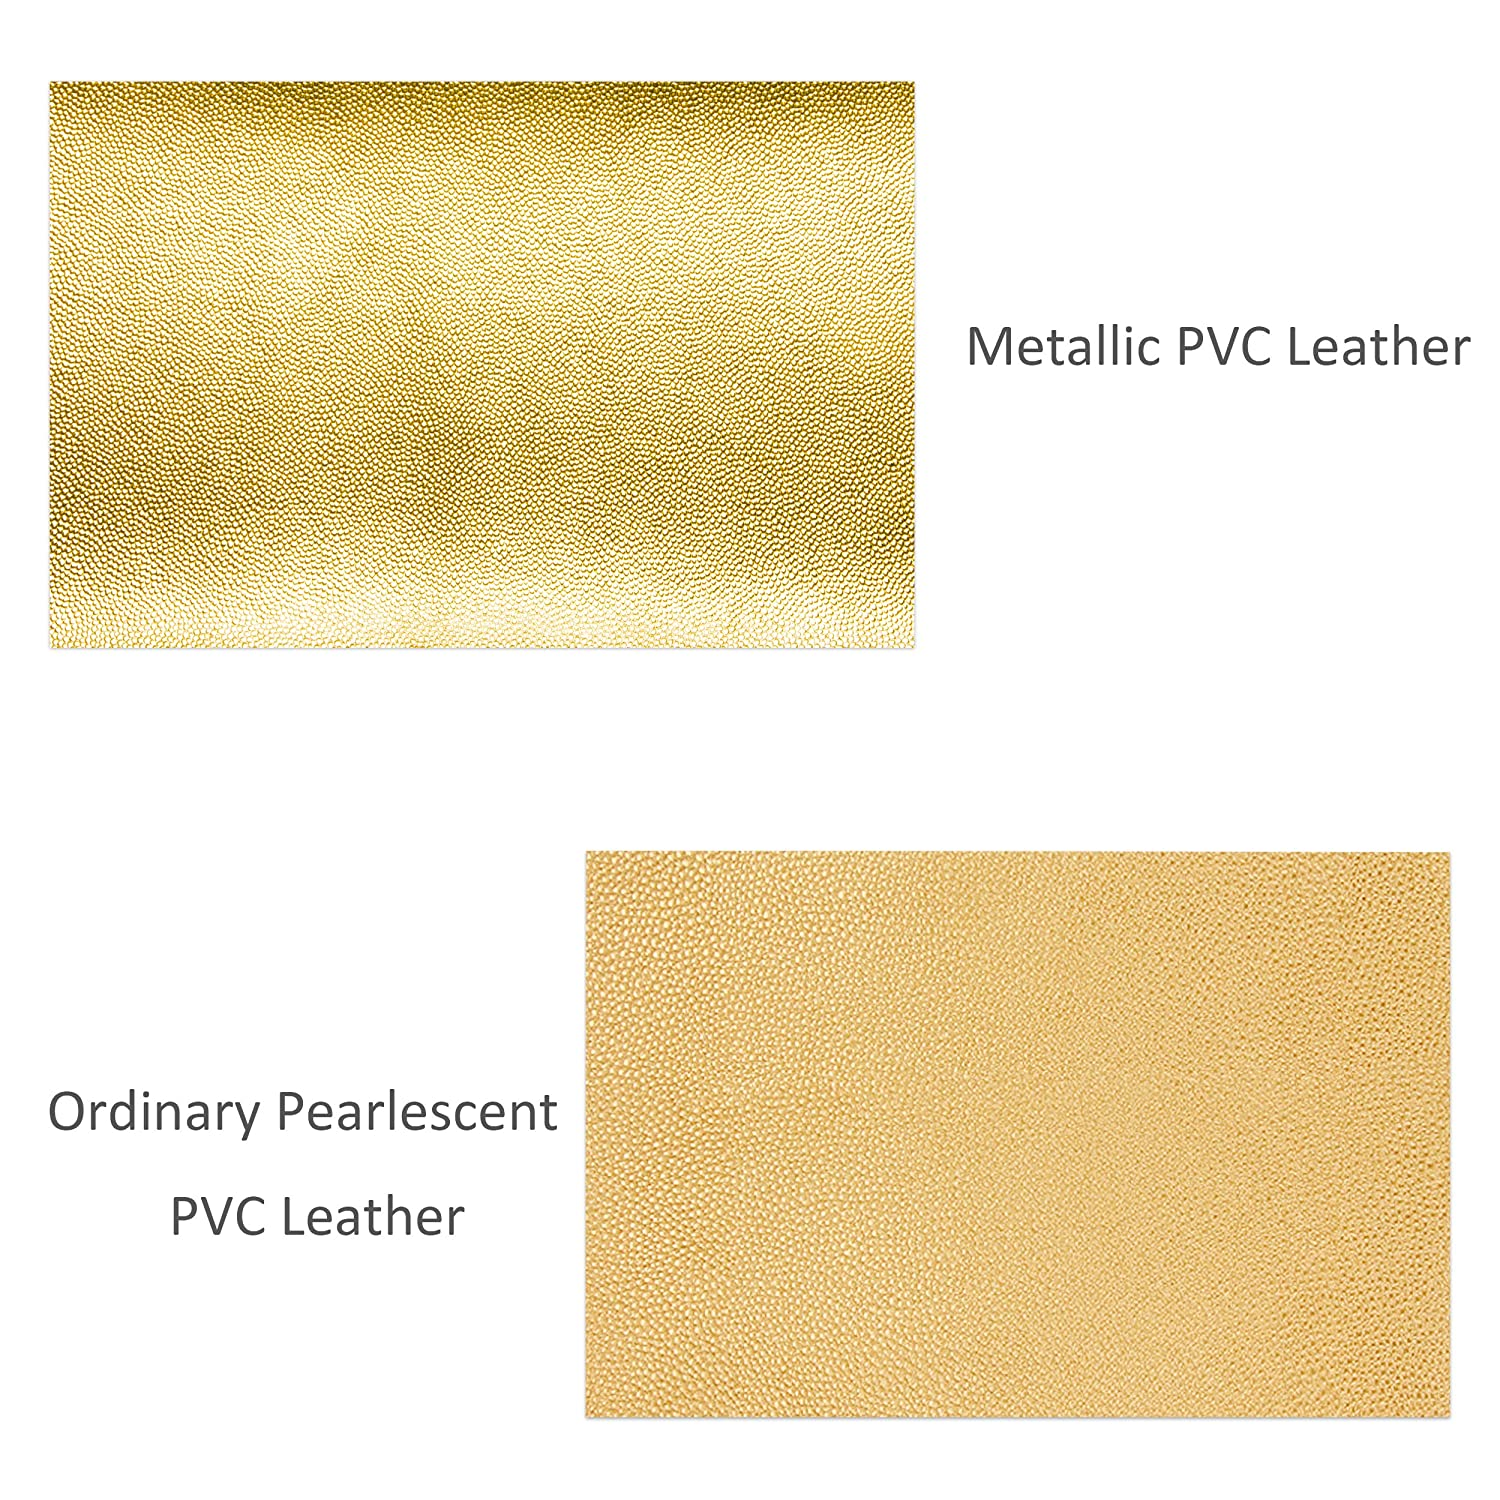 6 Metallic Colors PVC Leather Shiny Pearly Litchi Pattern Solid Color Fabric Faux Leather Sheets for Earrings Bows Jewelry DIY Craft Making 8 x 12